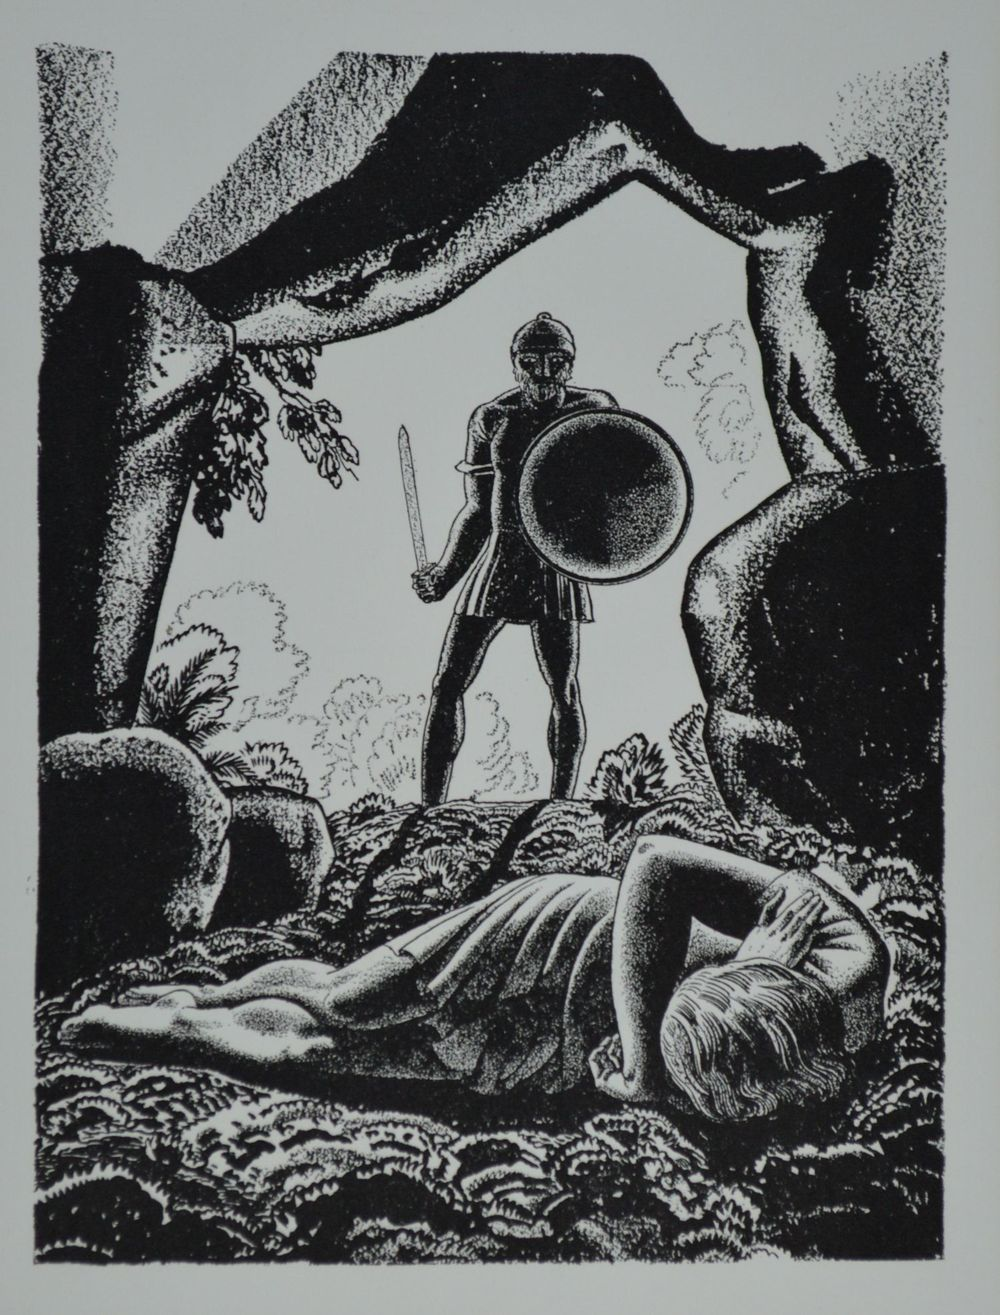 Rockwell Kent (1882 - 1971) Lithograph Illustration for Cymbeline from Forty Drawings Done by Rockwell Kent to Illustrate the Works of William Shakespeare, Garden City, New York, Doubleday, 1936.  A total edition of 1,000 portfolios was printed. This print has been removed from its original acidic mount, cleaned, and matted using archival materials. Very good condition. $40